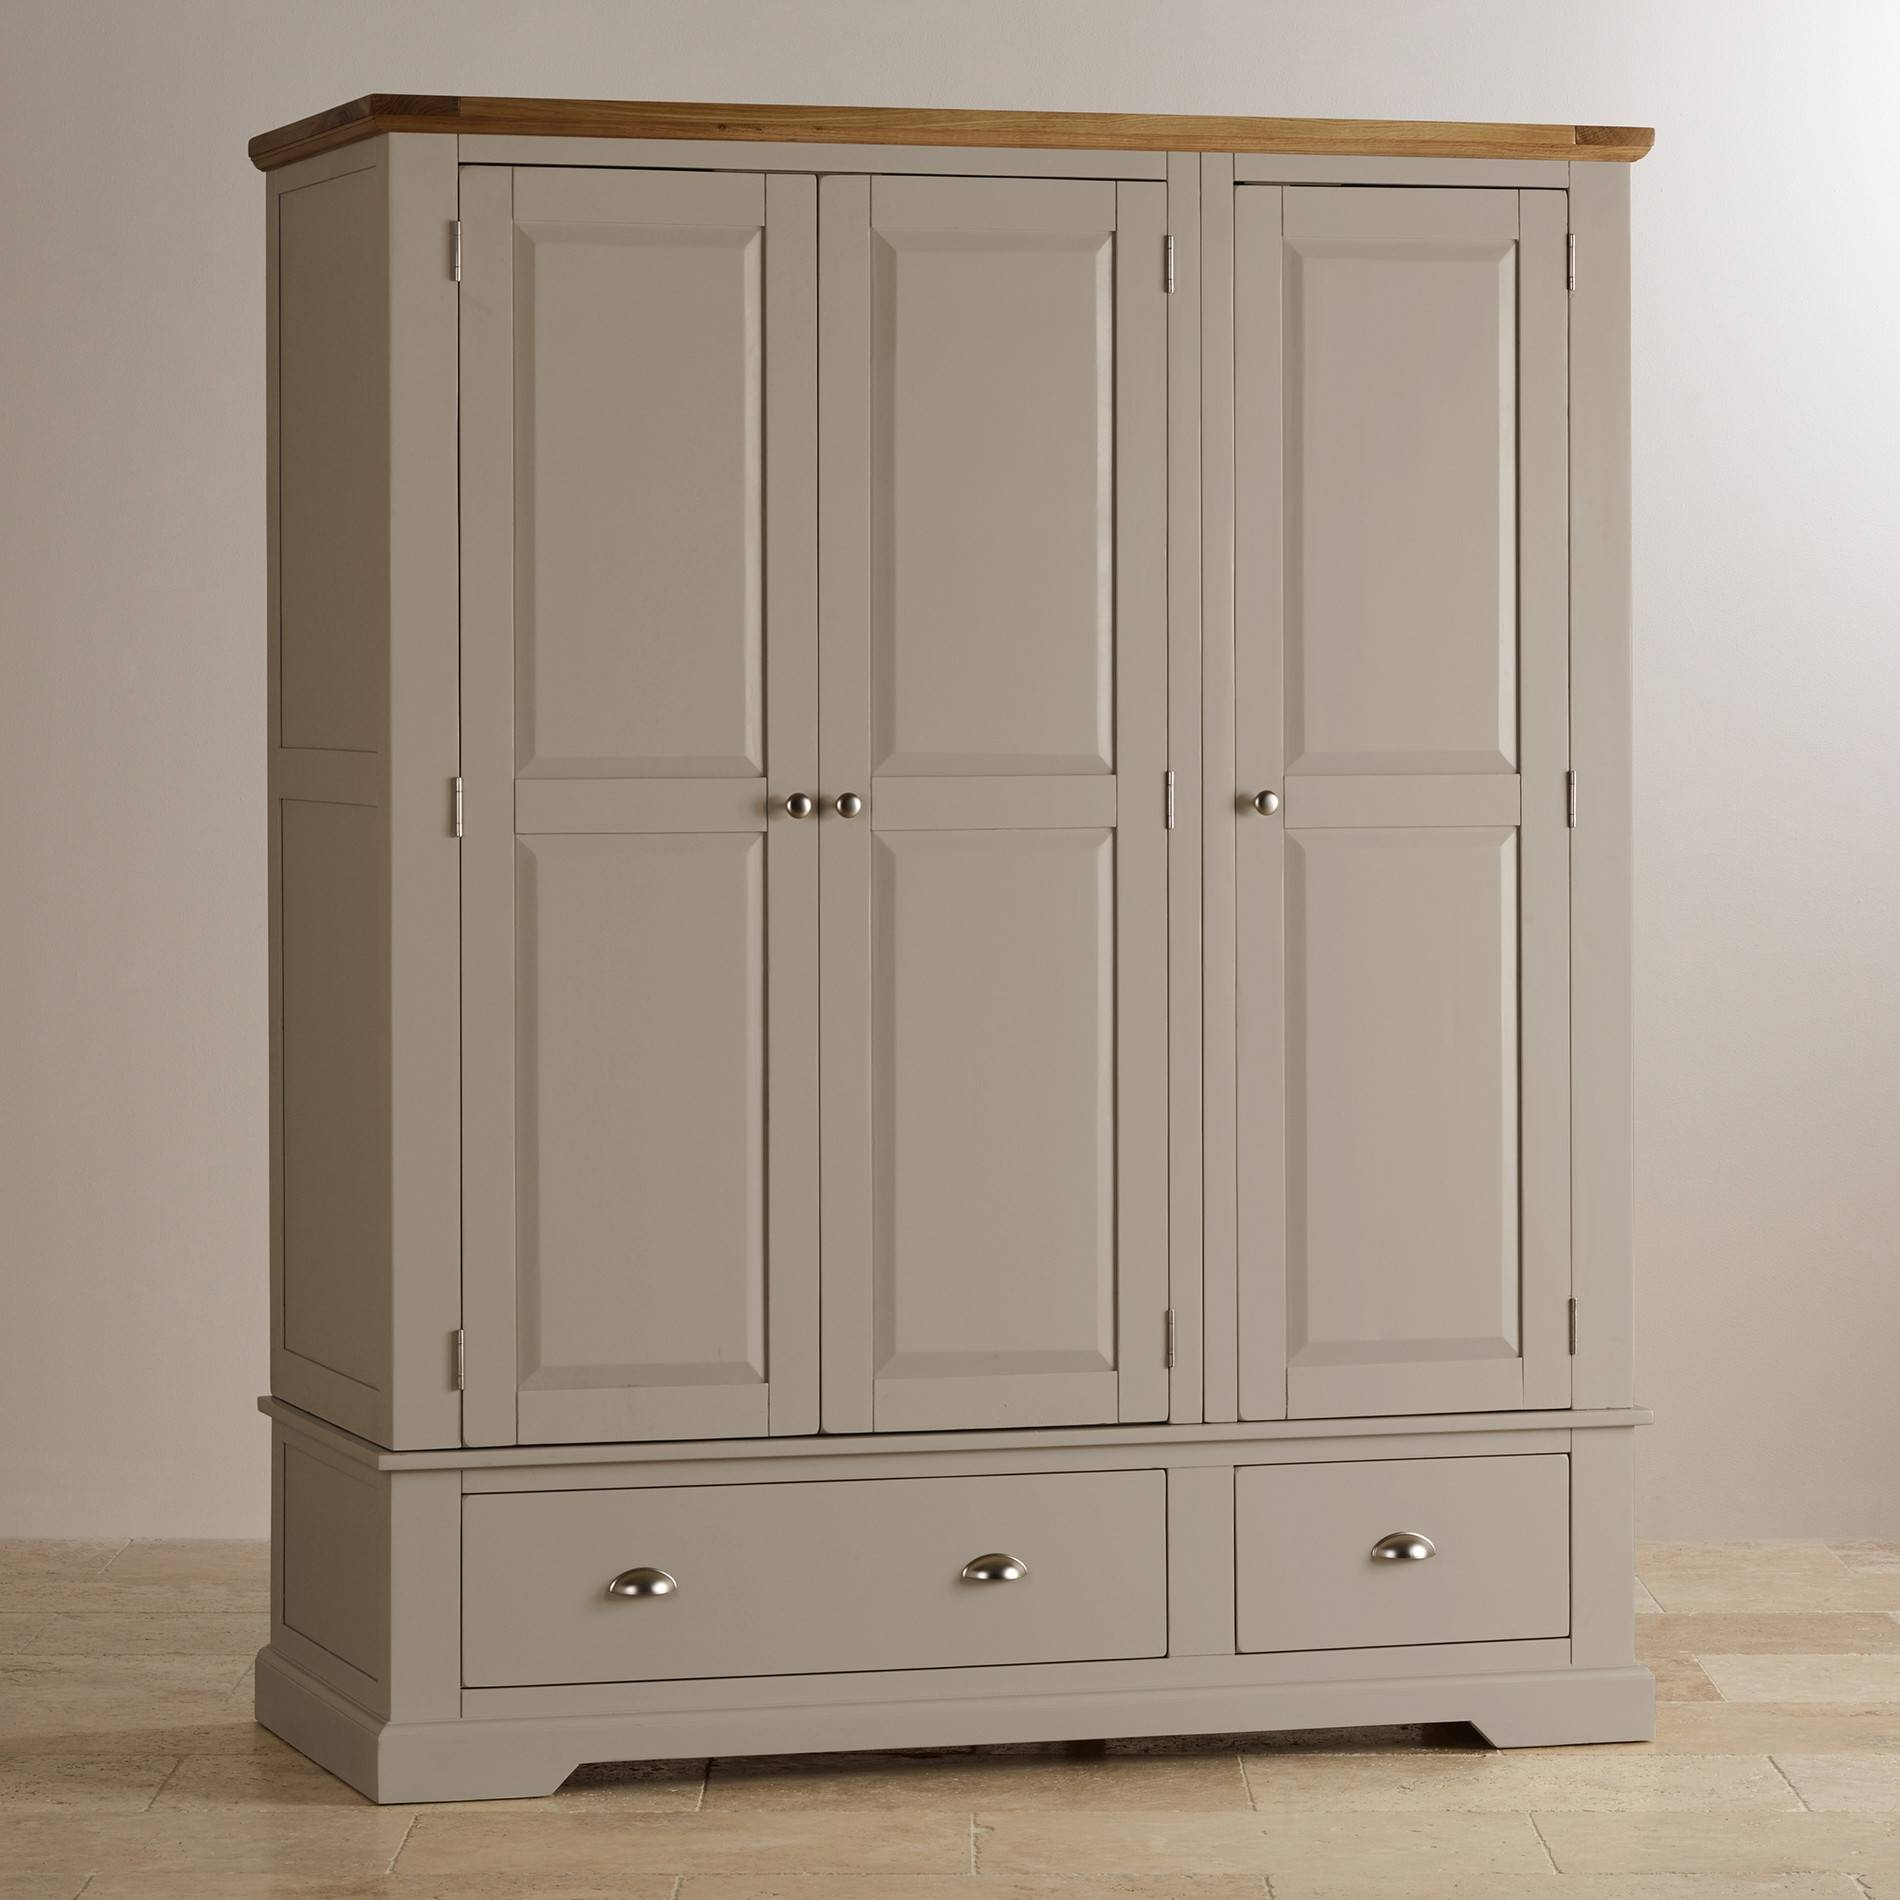 St Ives Grey Painted Triple Wardrobe In Natural Oak regarding Cream Triple Wardrobes (Image 15 of 15)